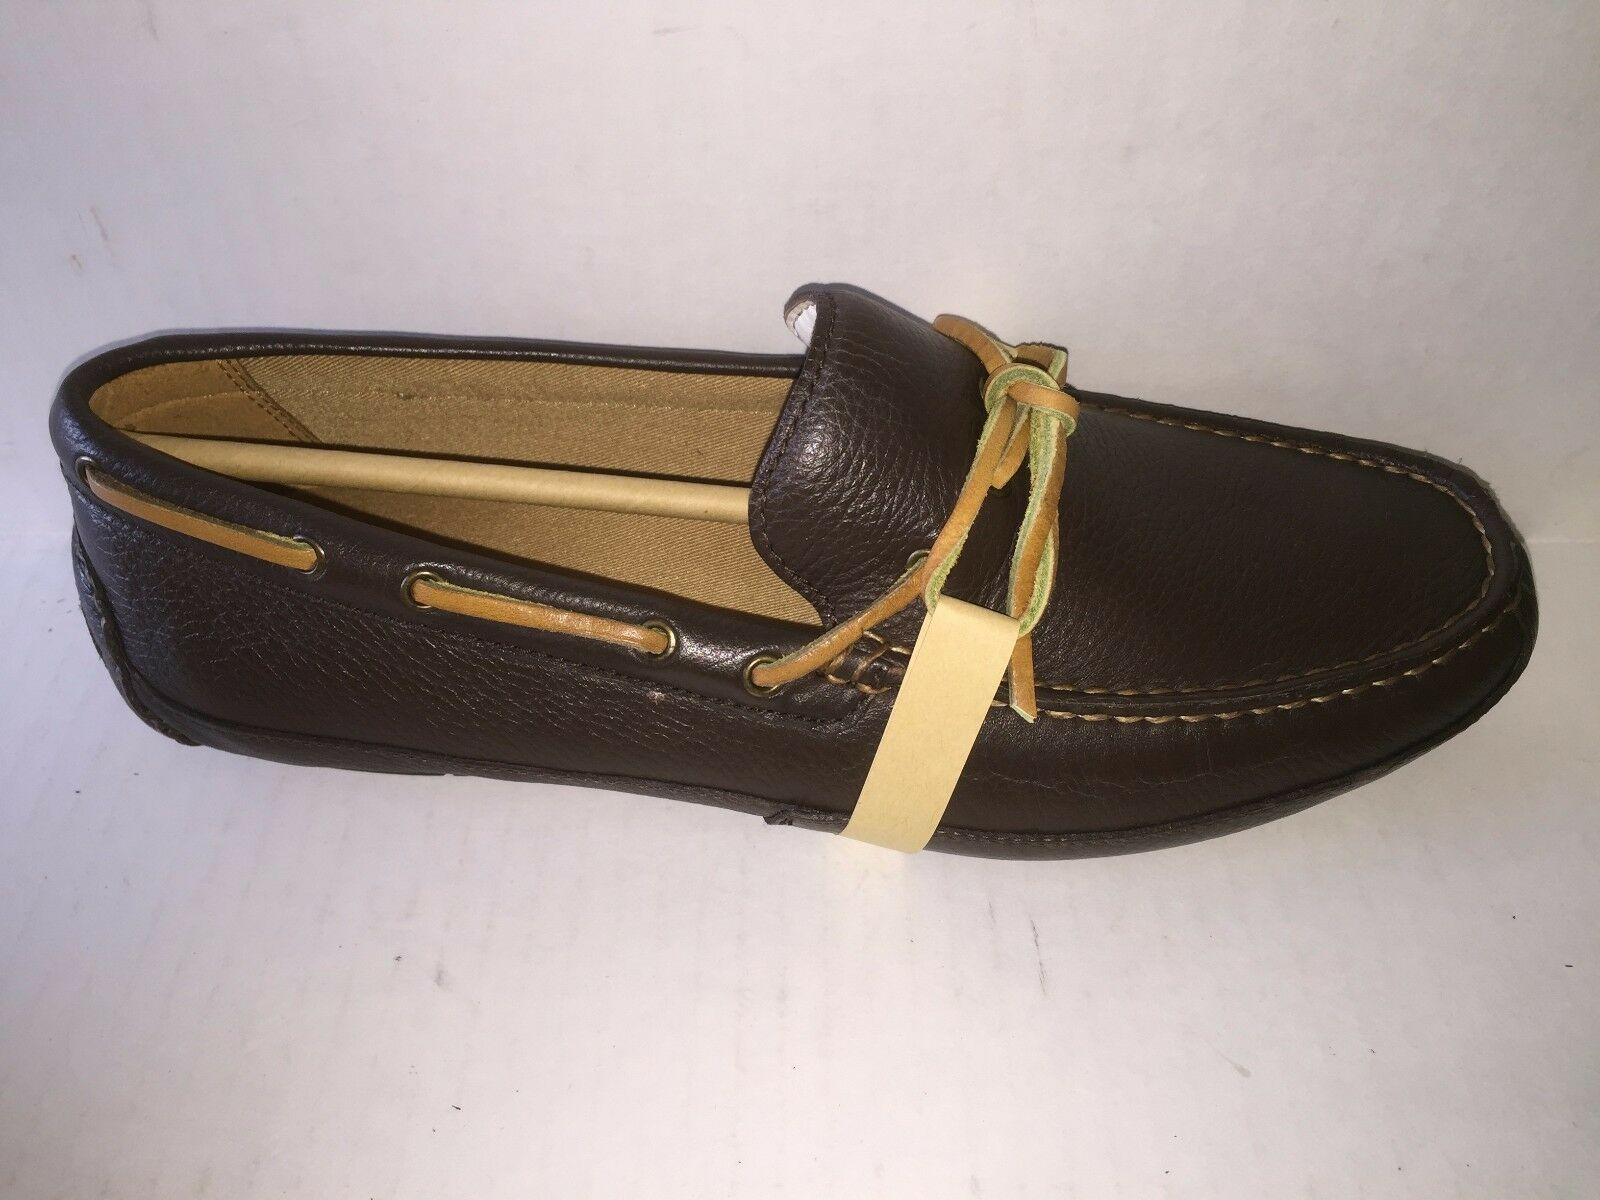 Cole Haan Halsted Camp Moc Brown, C12224, new in box, comfortable stylish shoes